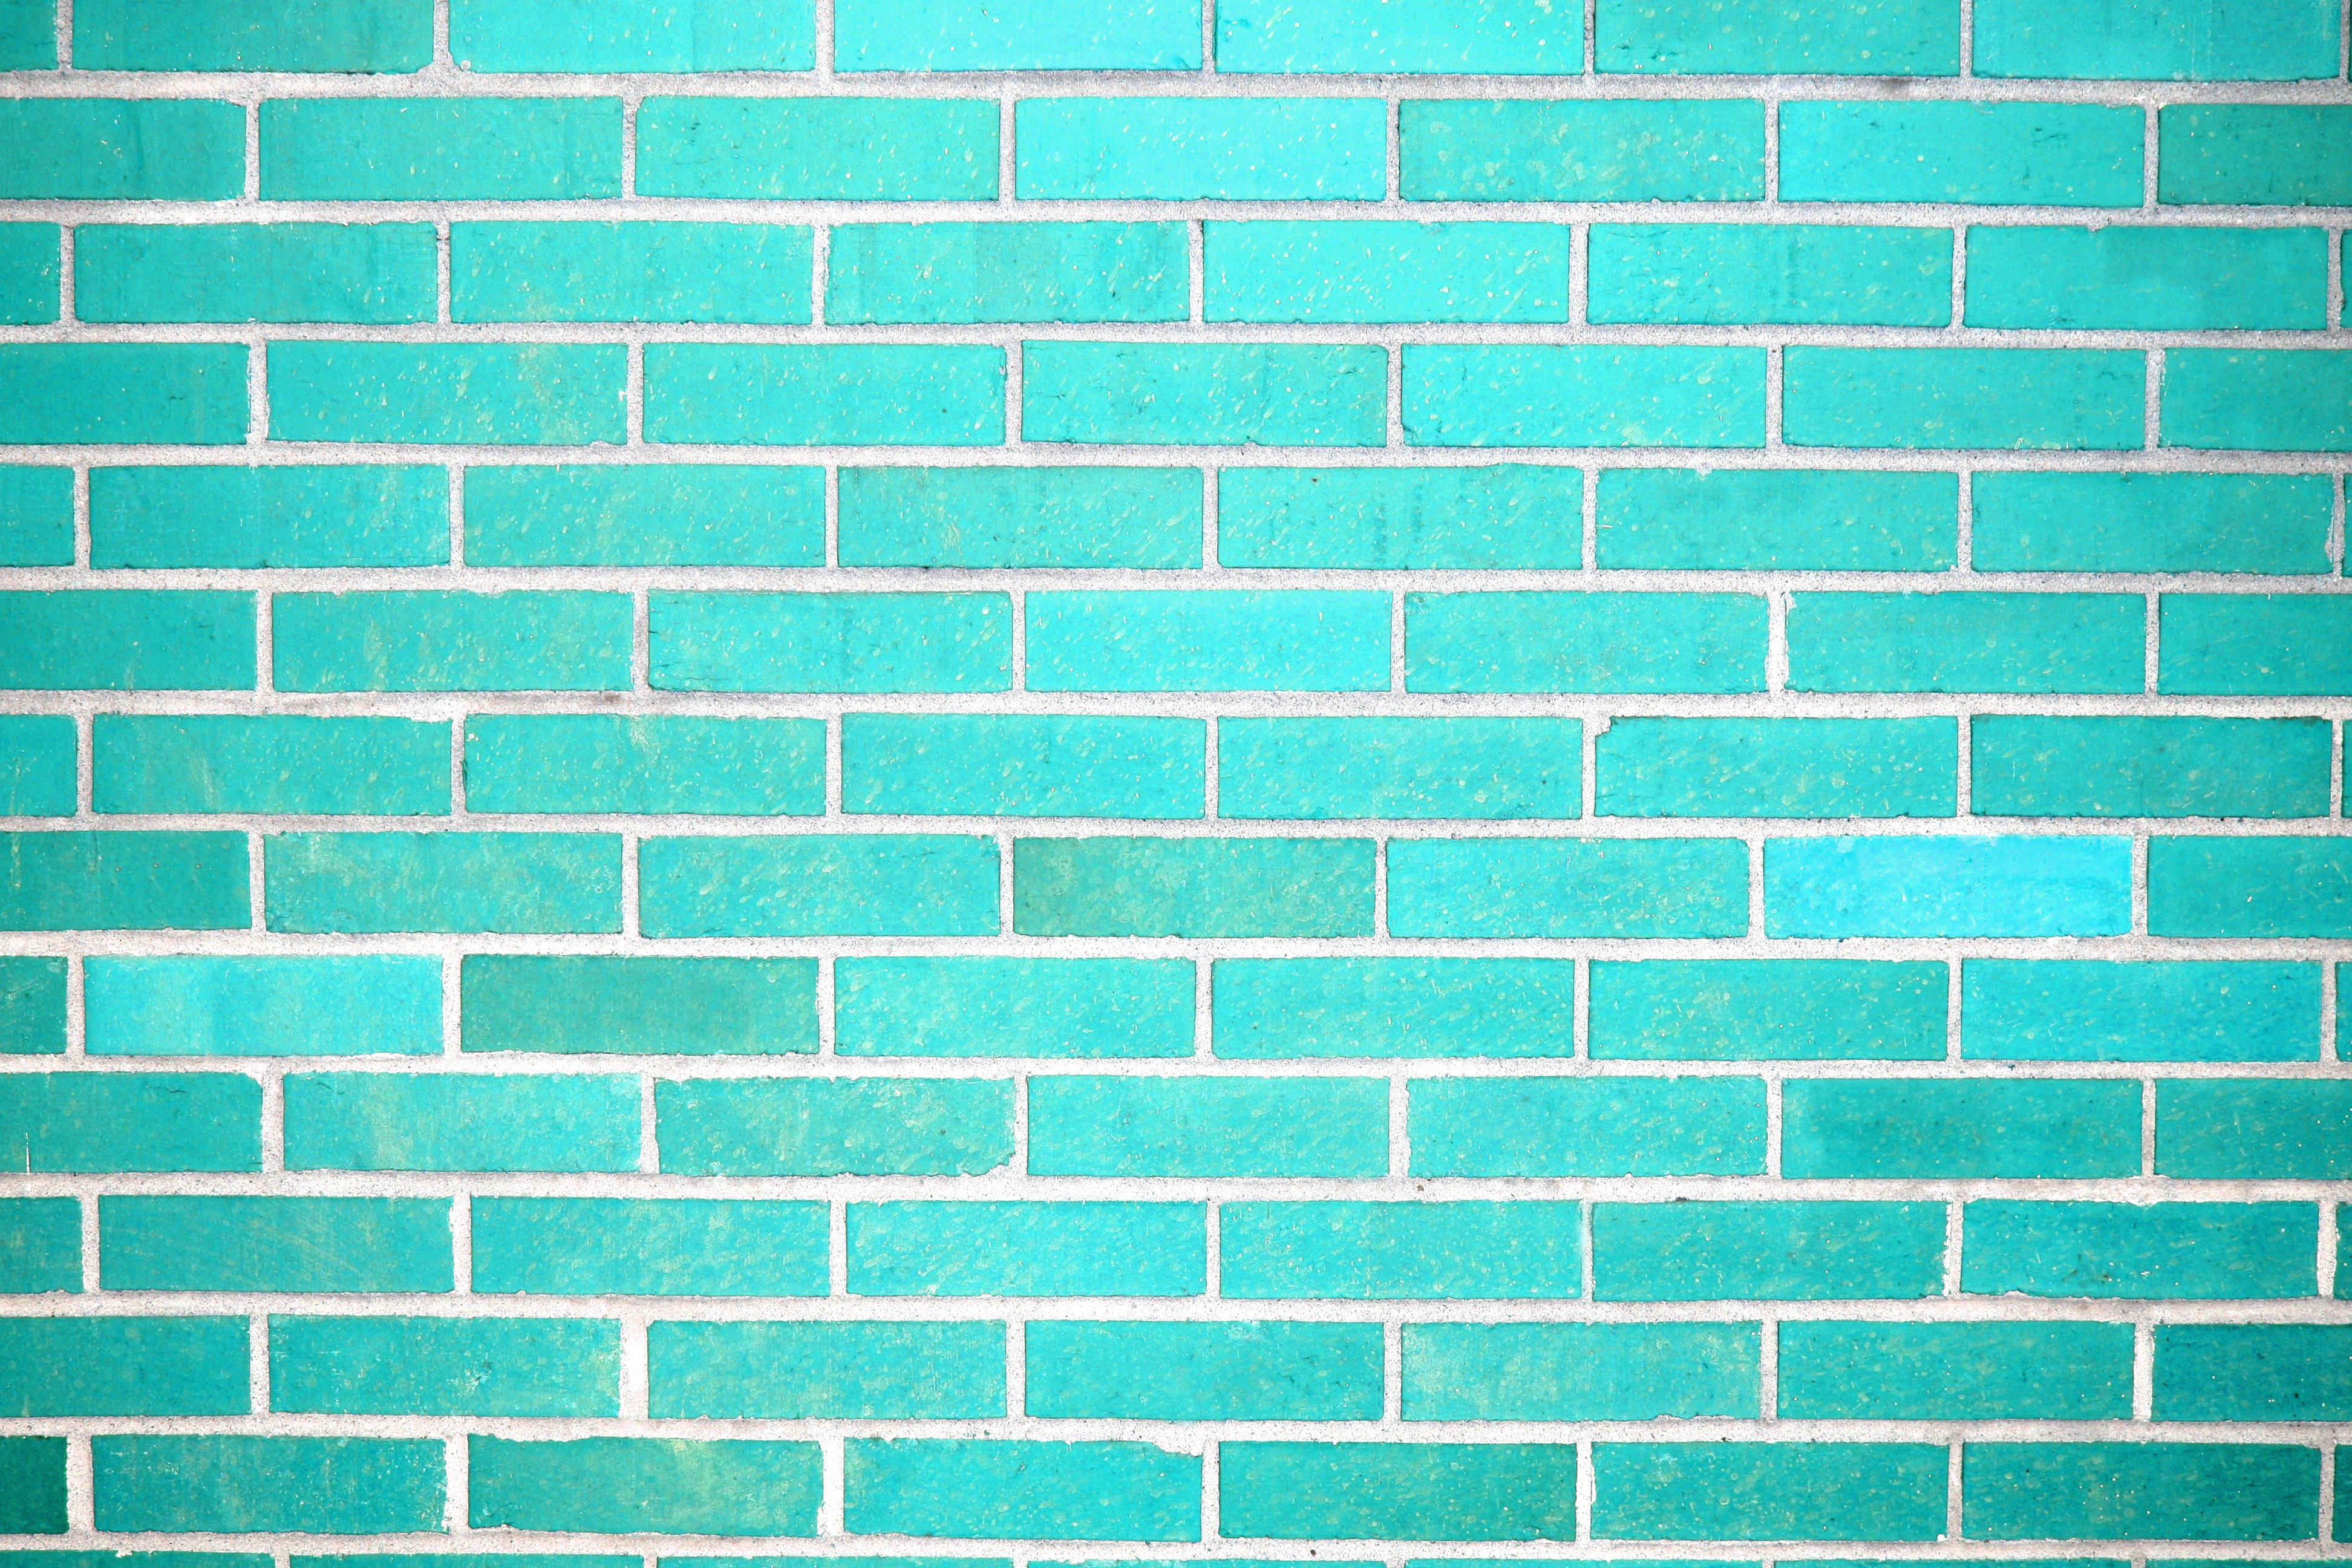 Teal Brick Wall Texture Picture Photograph Photos Public 3888x2592